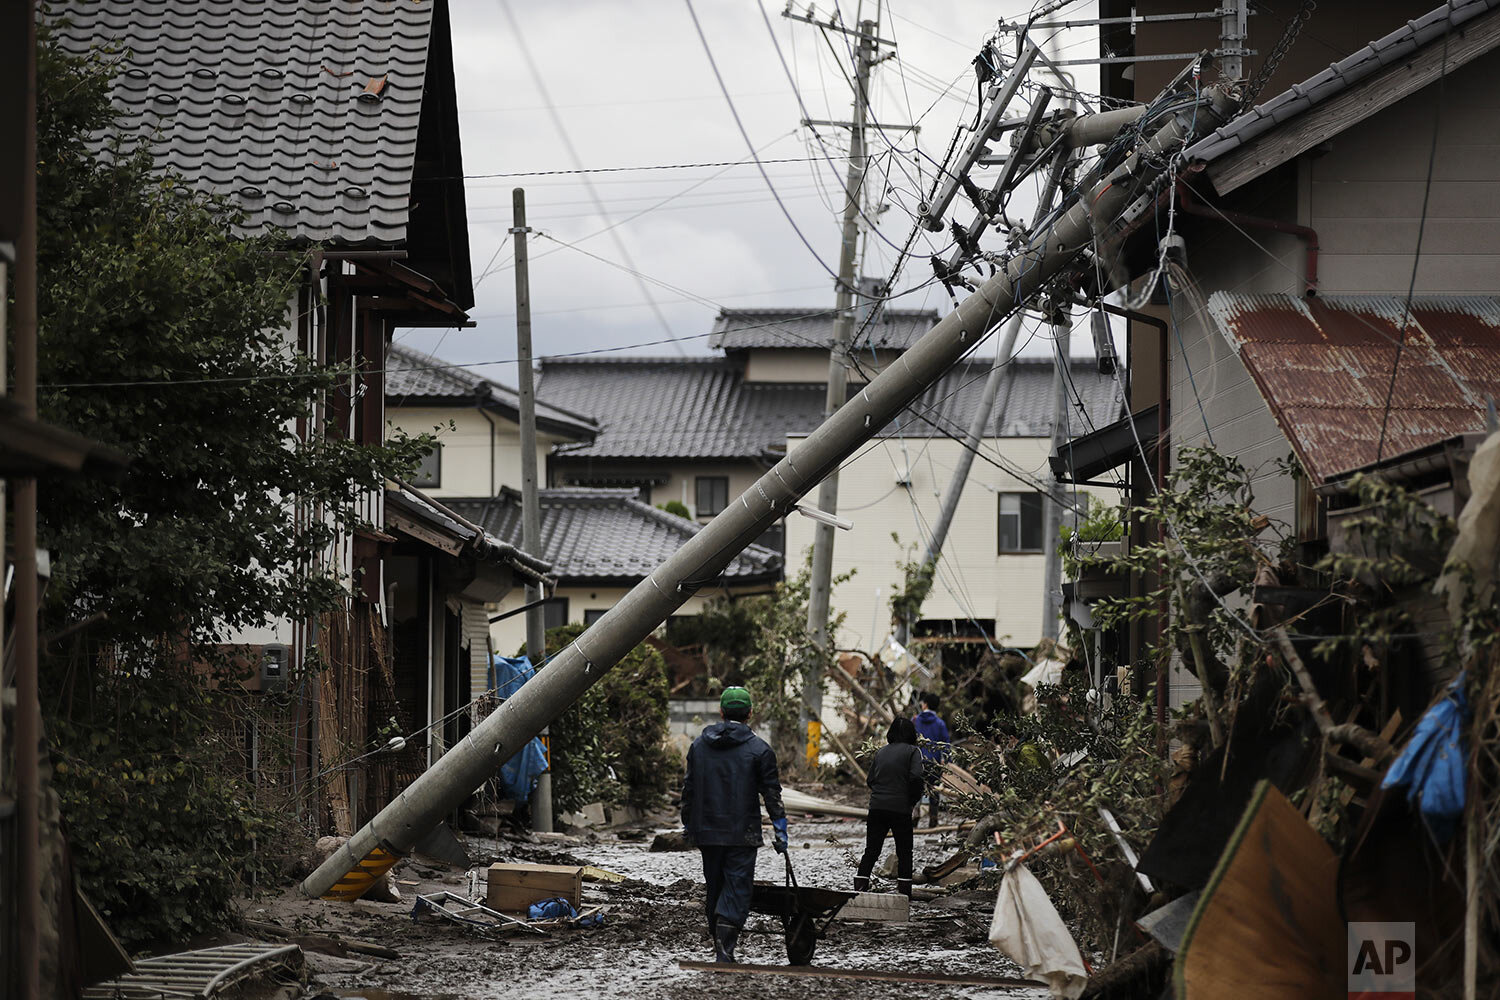 Residents walk along the mud-covered road in a neighborhood devastated by Typhoon Hagibis, in Nagano, Japan, Tuesday, Oct. 15, 2019. (AP Photo/Jae C. Hong)